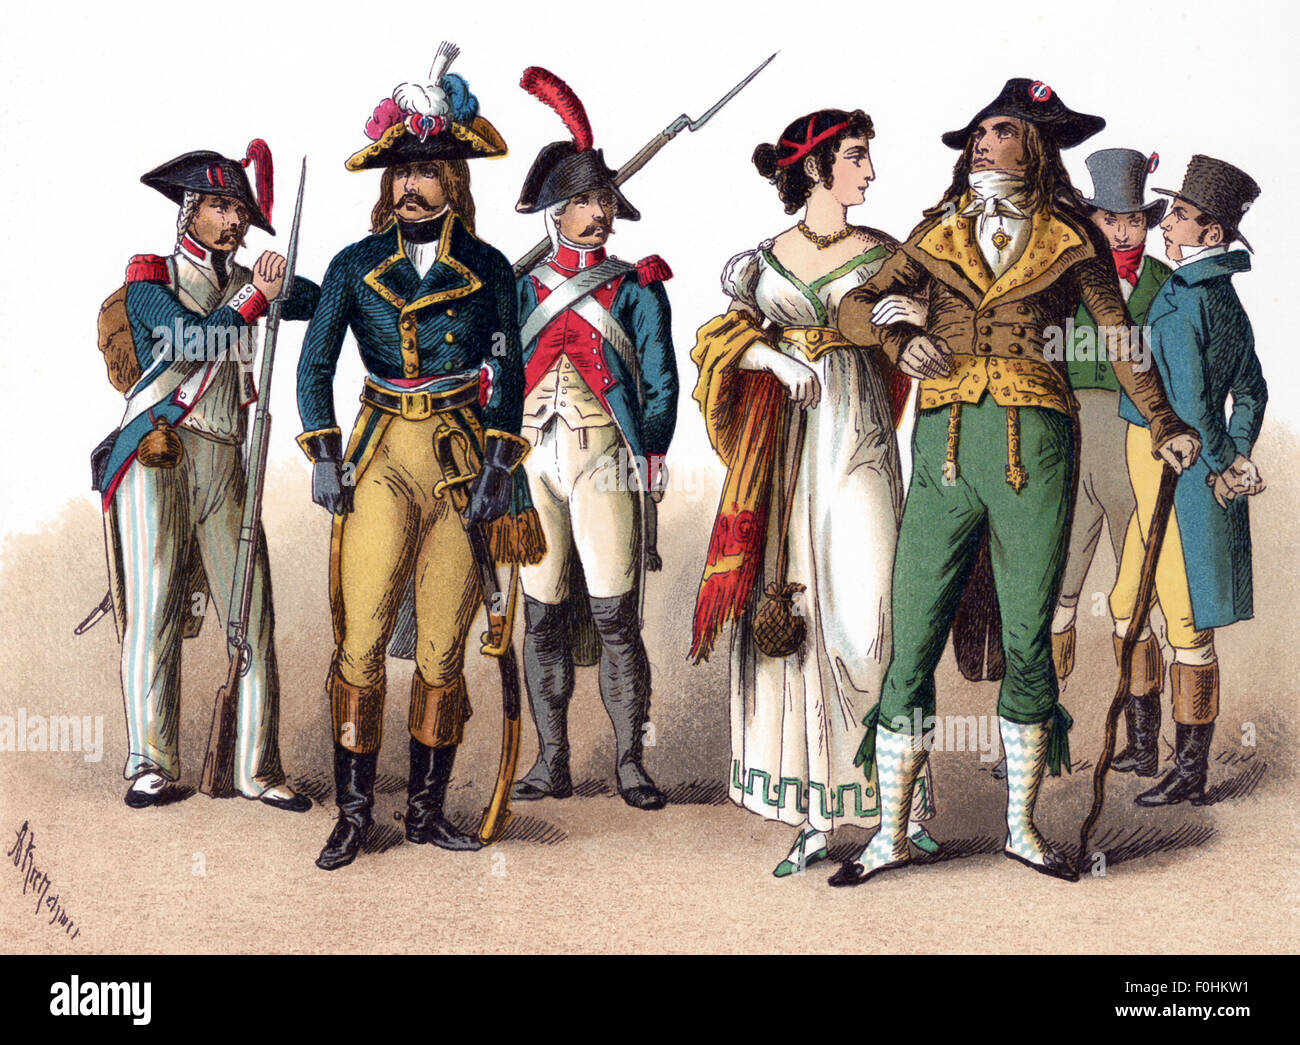 The figures illustrated here represent French people between 1790 and 1804. They are, from left to right: Grenadier - Stock Image